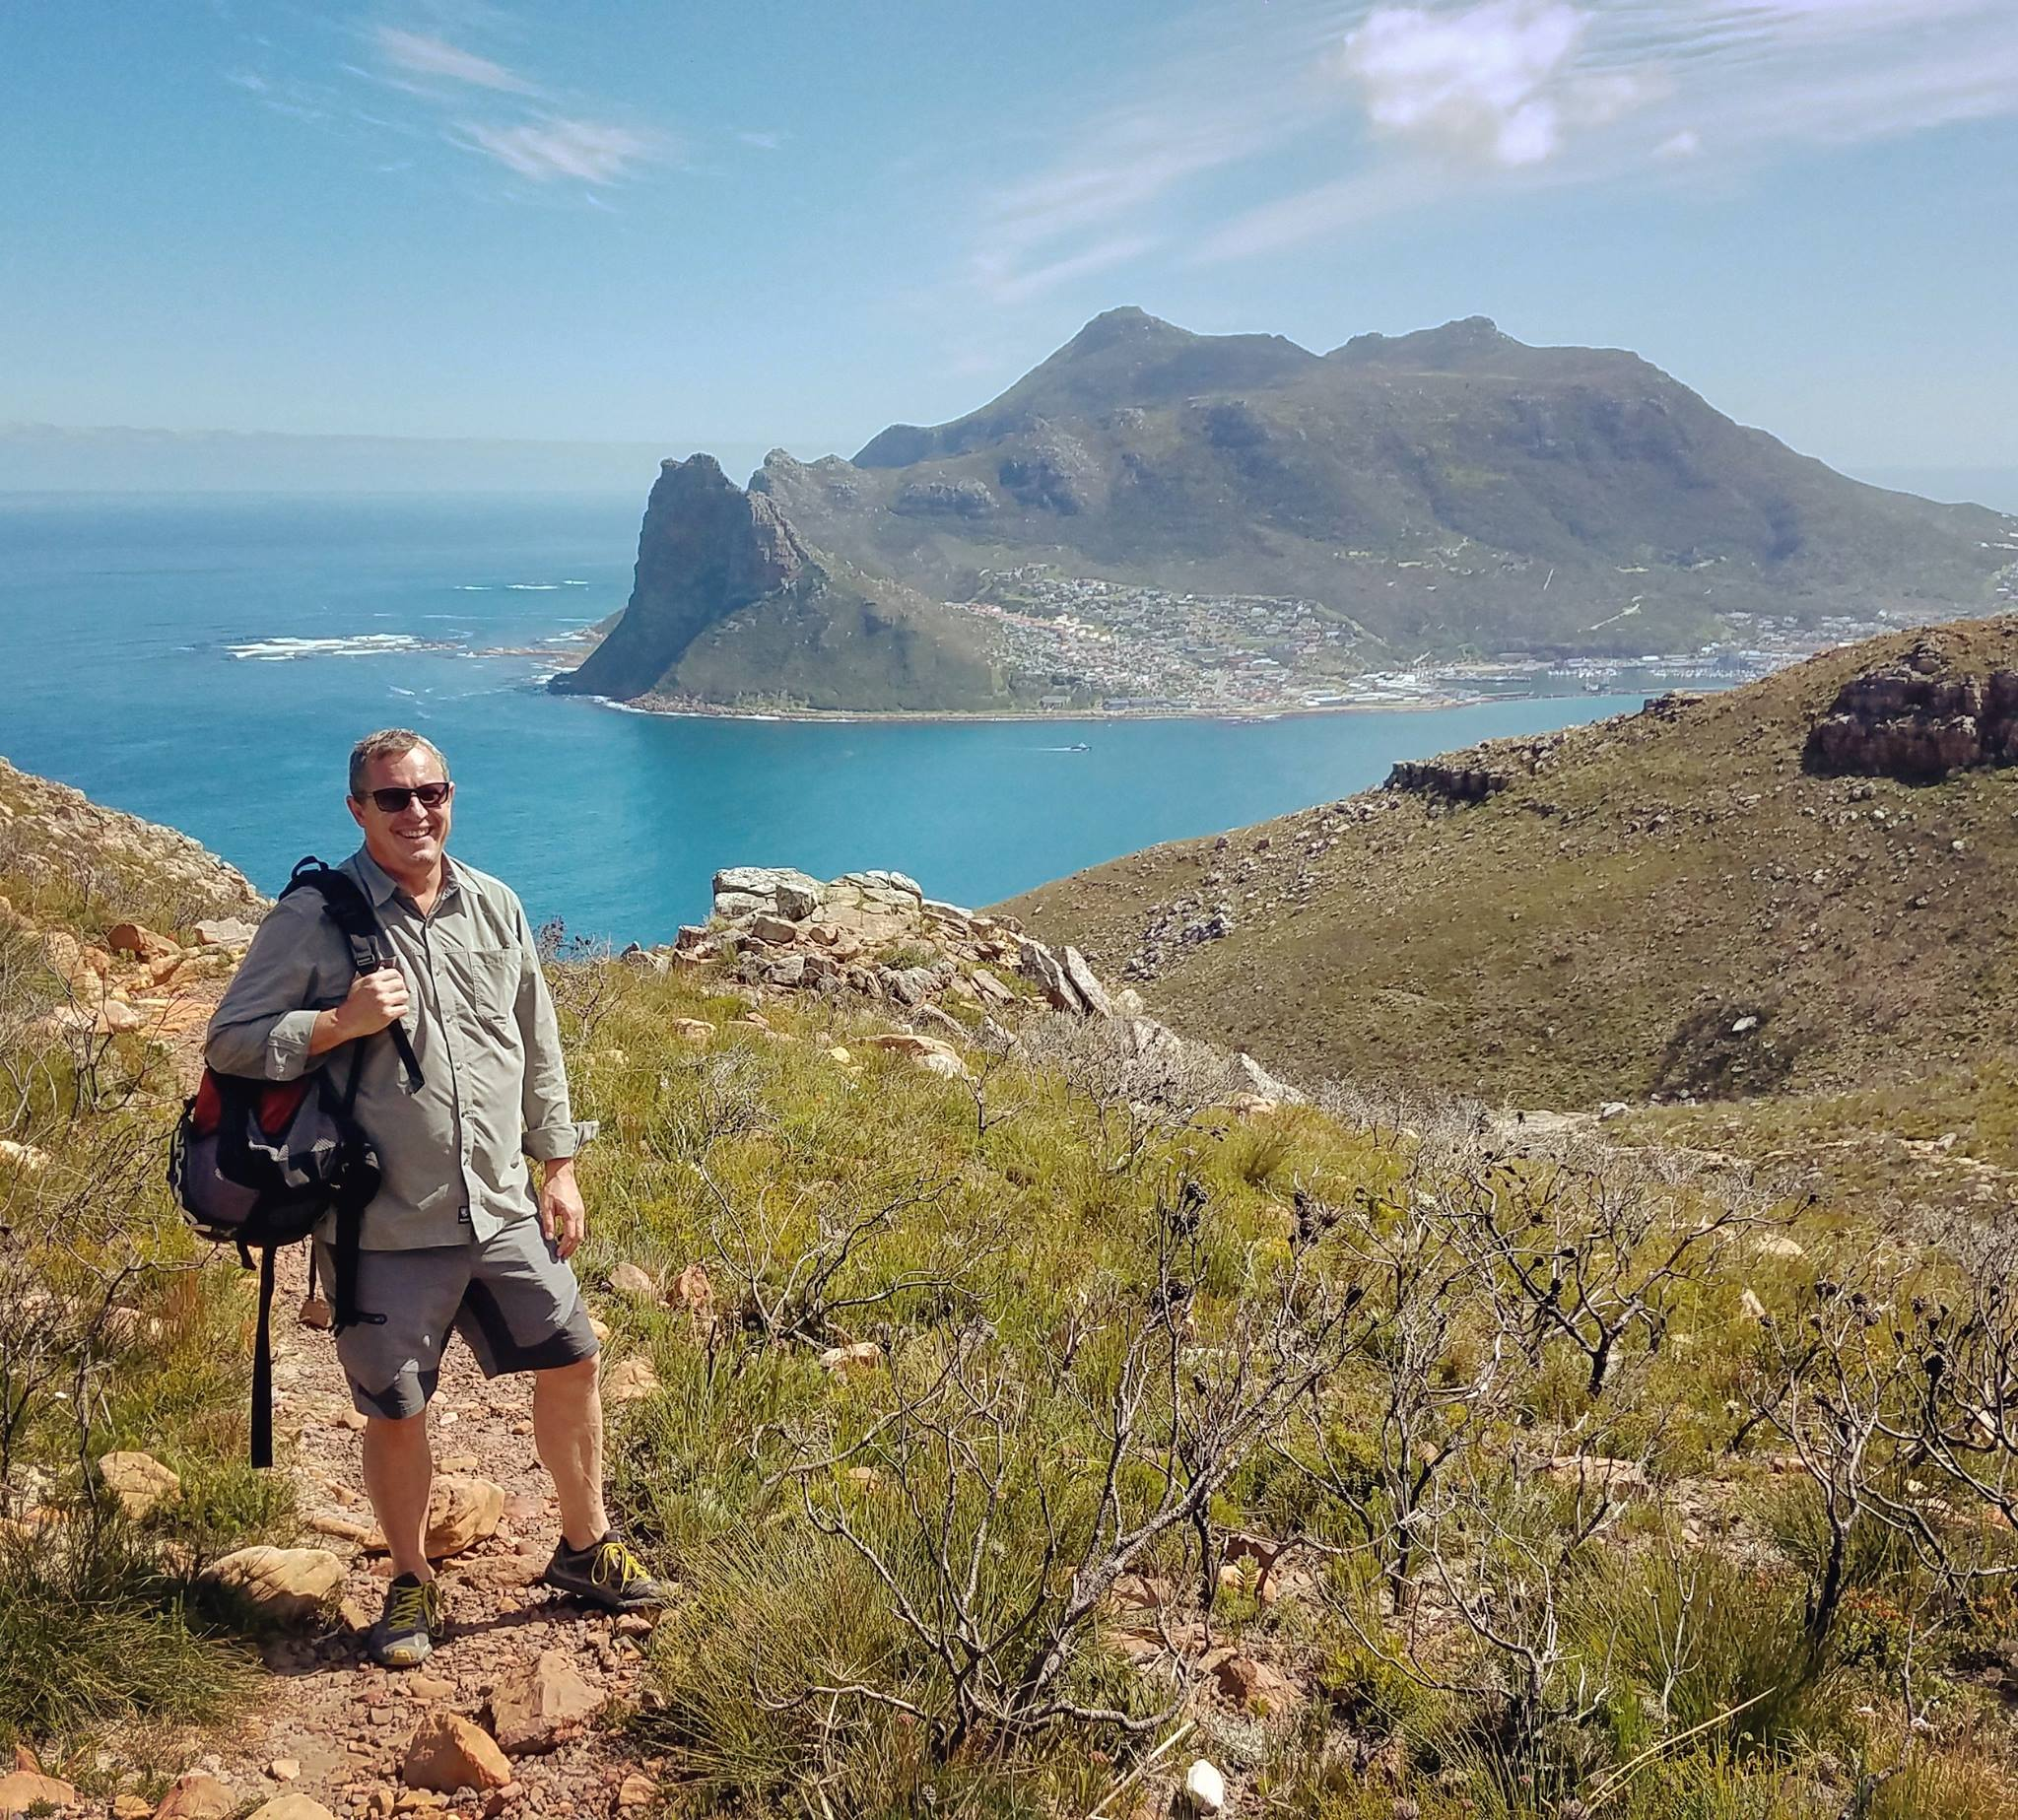 Chapmans-peak-hike-hout-bay-3